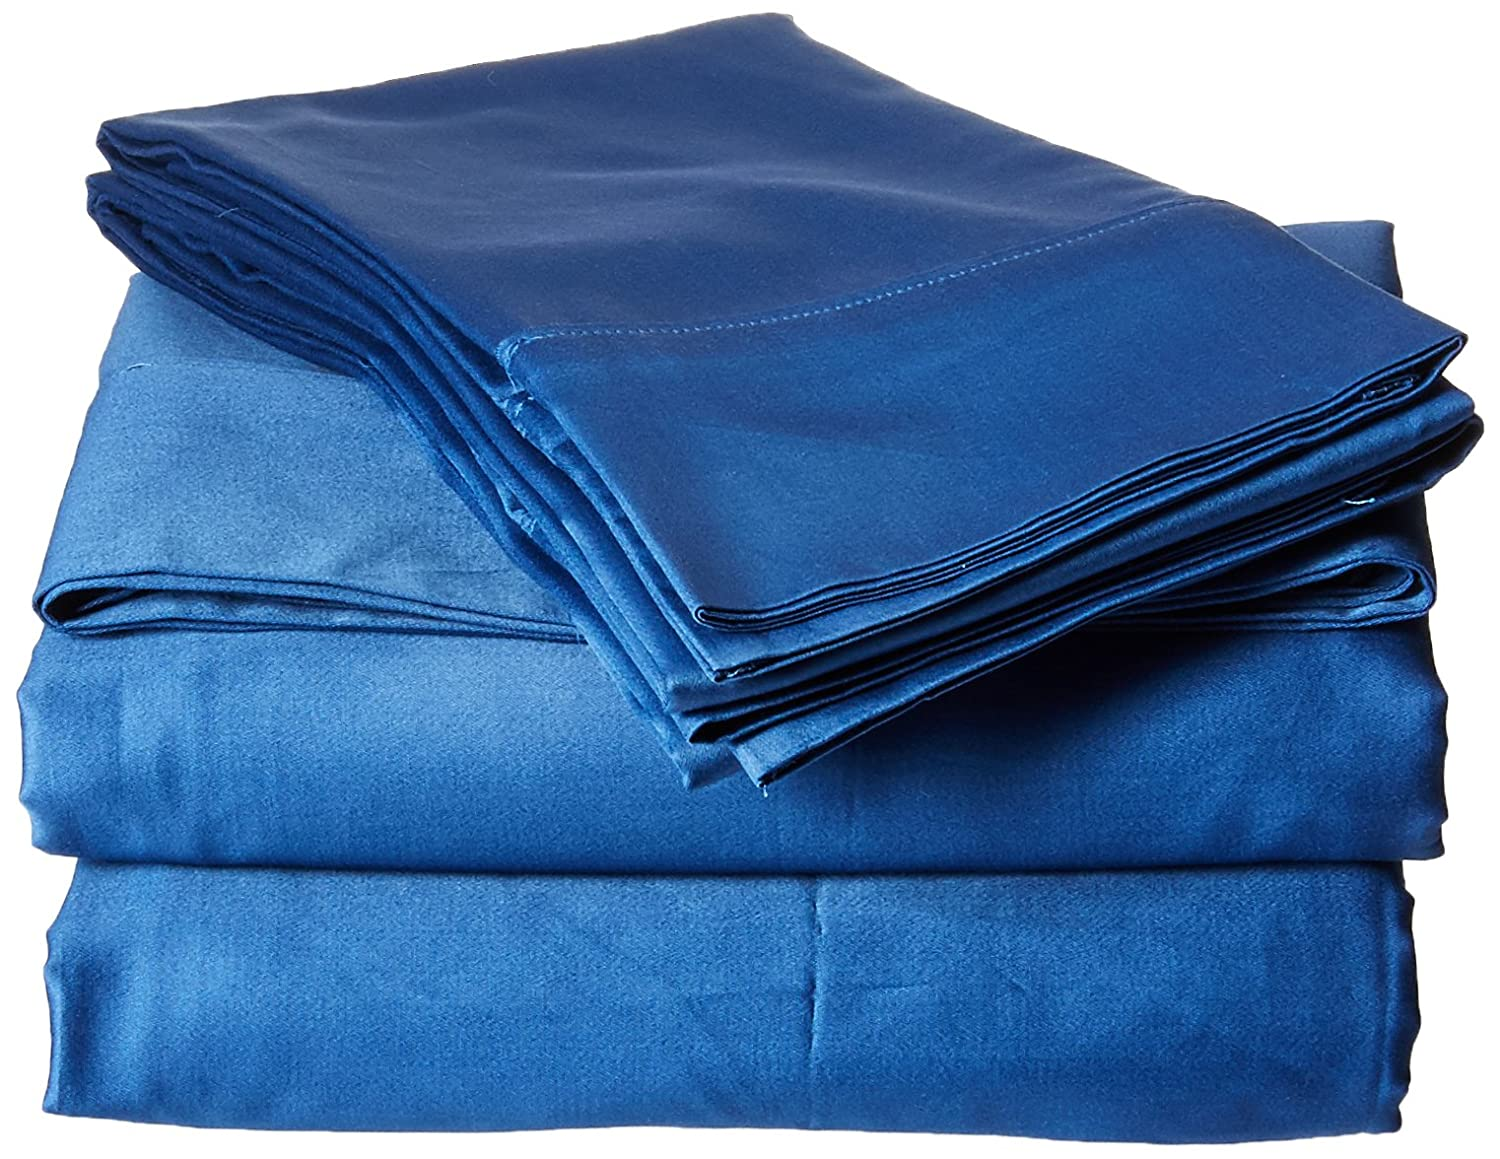 300TC Cotton Solid Color Sheet Set by Fiesta Bedding